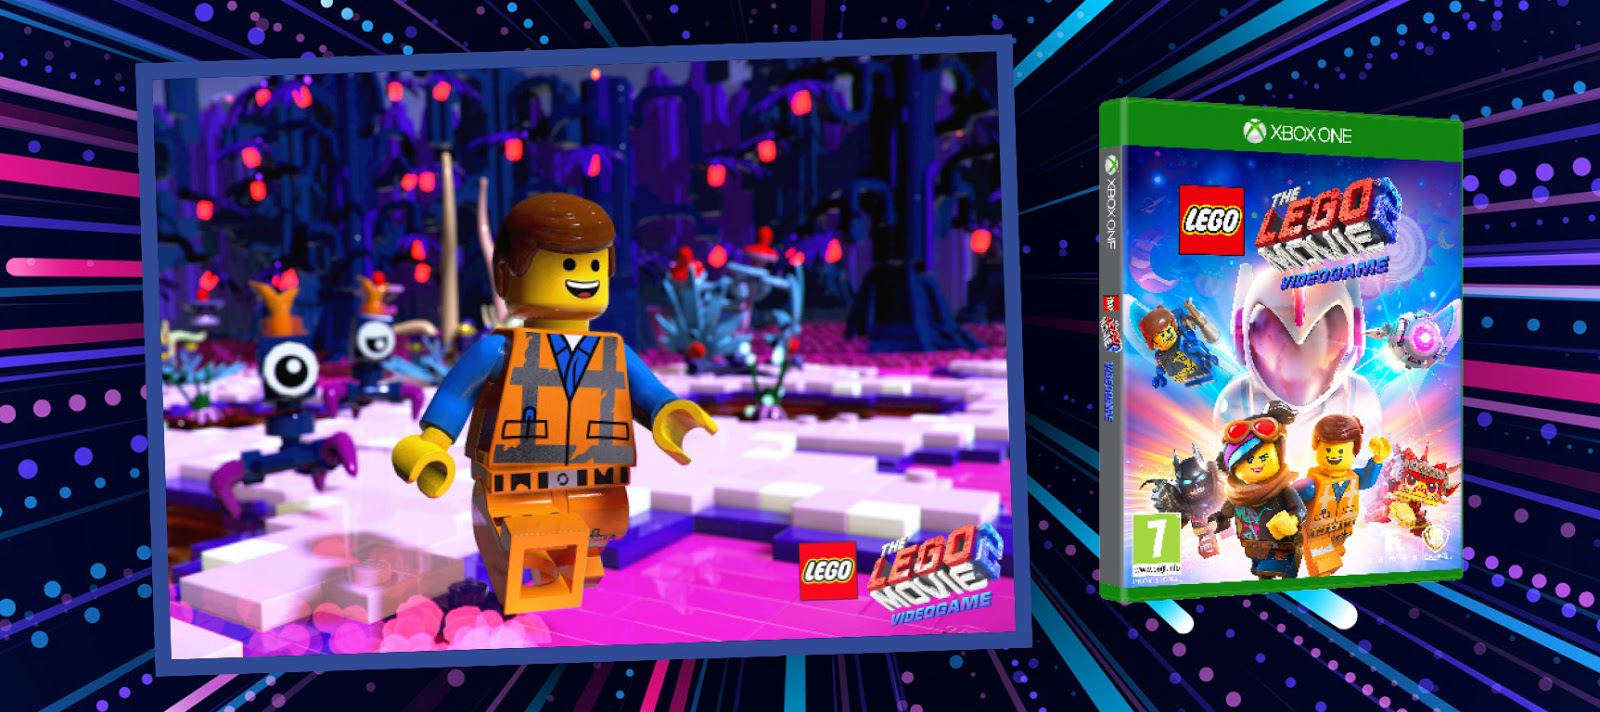 The movie2 free | The Lego Movie 2 Videogame Free Download  2019-05-10